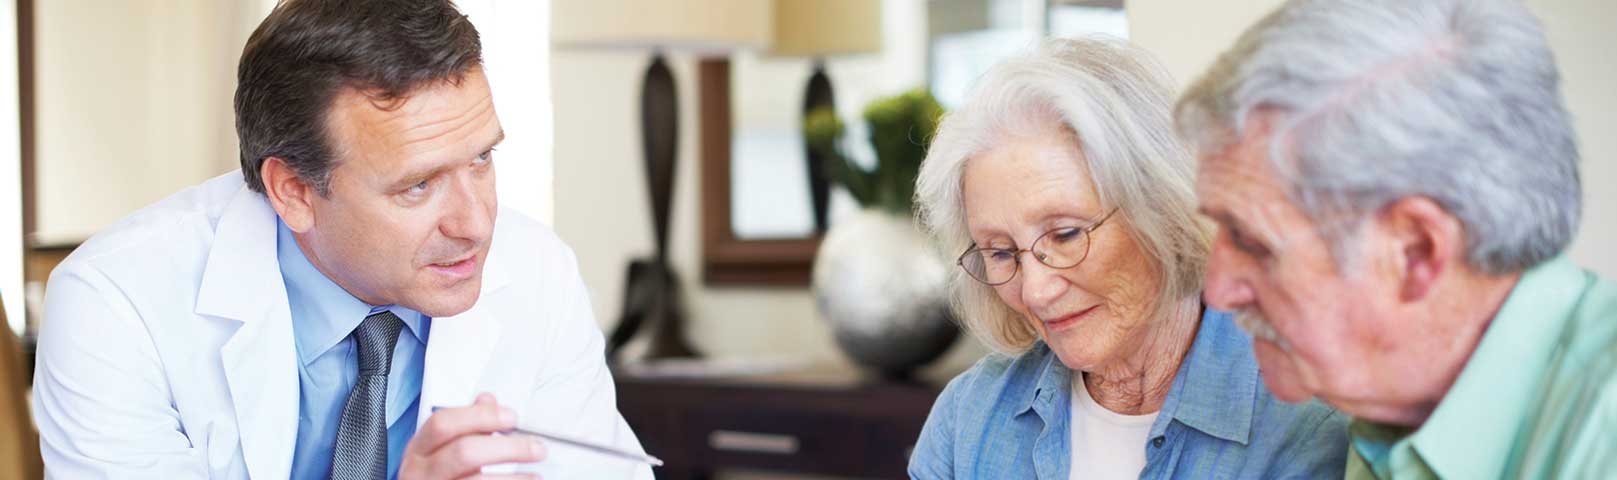 Age-Related Hearing Loss & Cognitive Decline